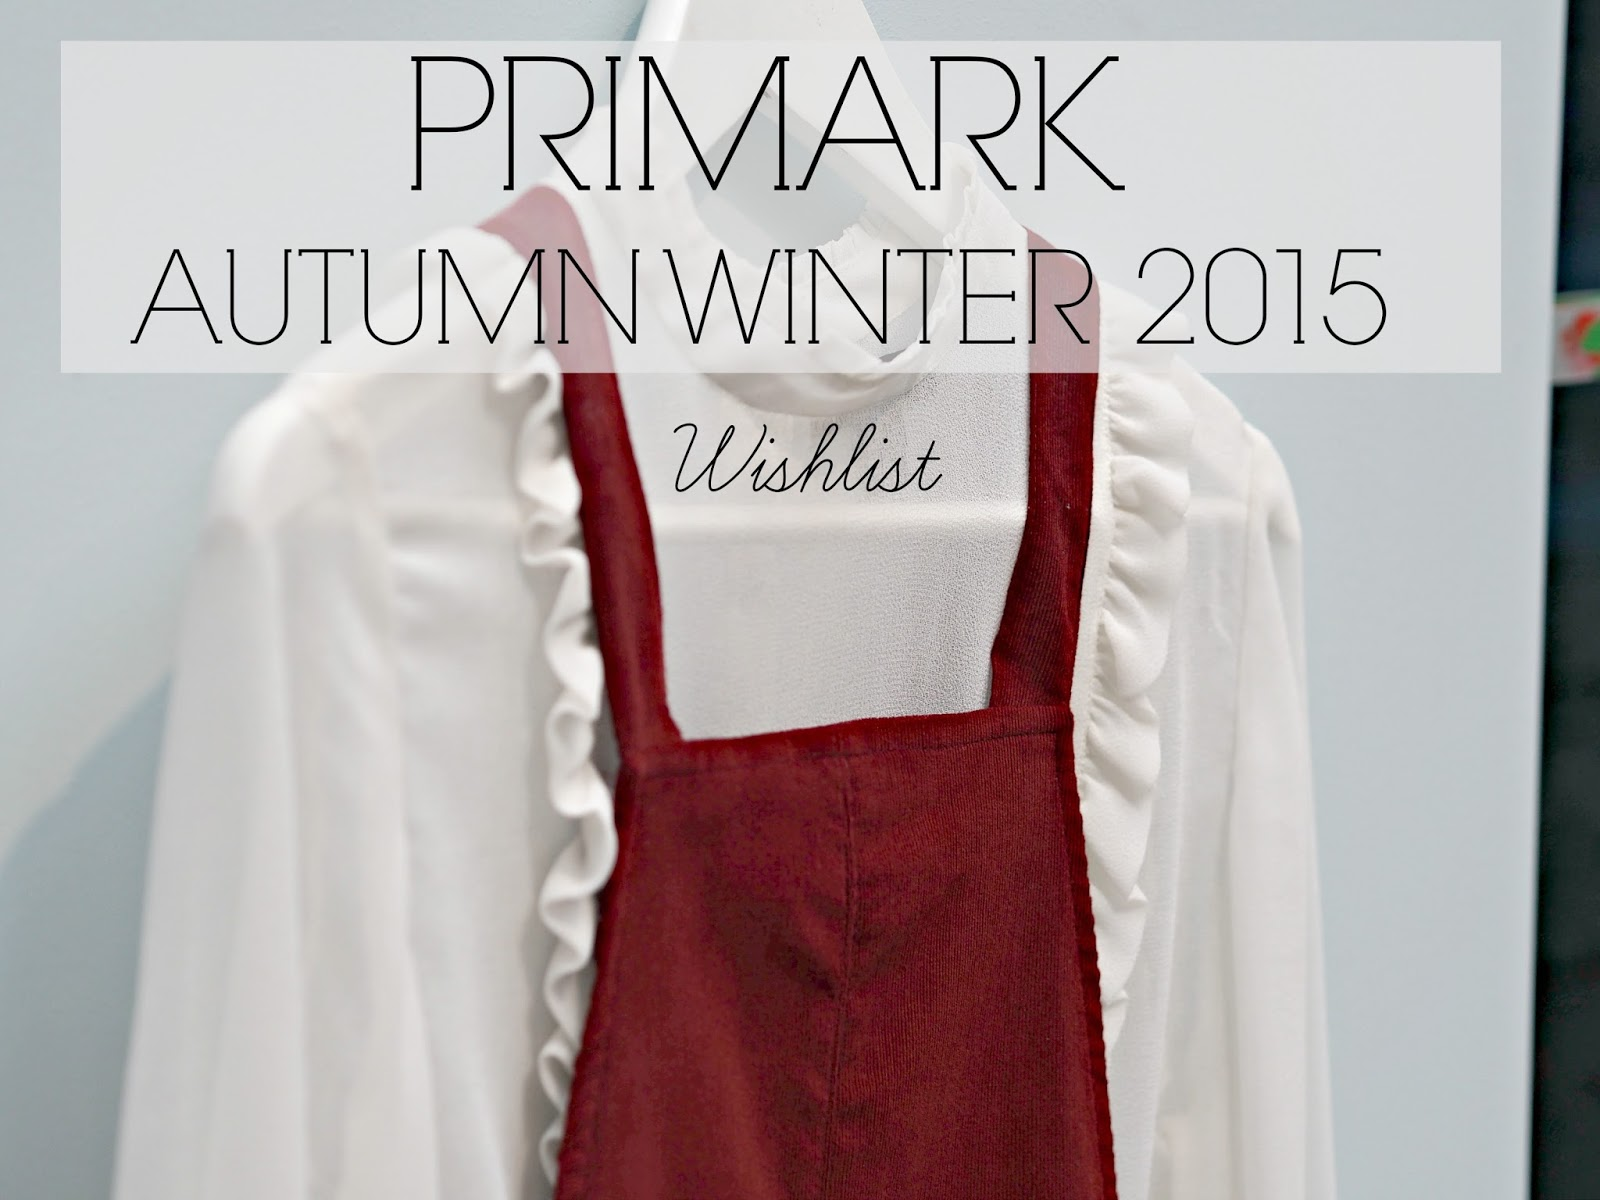 Primark Autumn Winter 2015 Wishlist - Fashion Mumblr 75ecf5d39